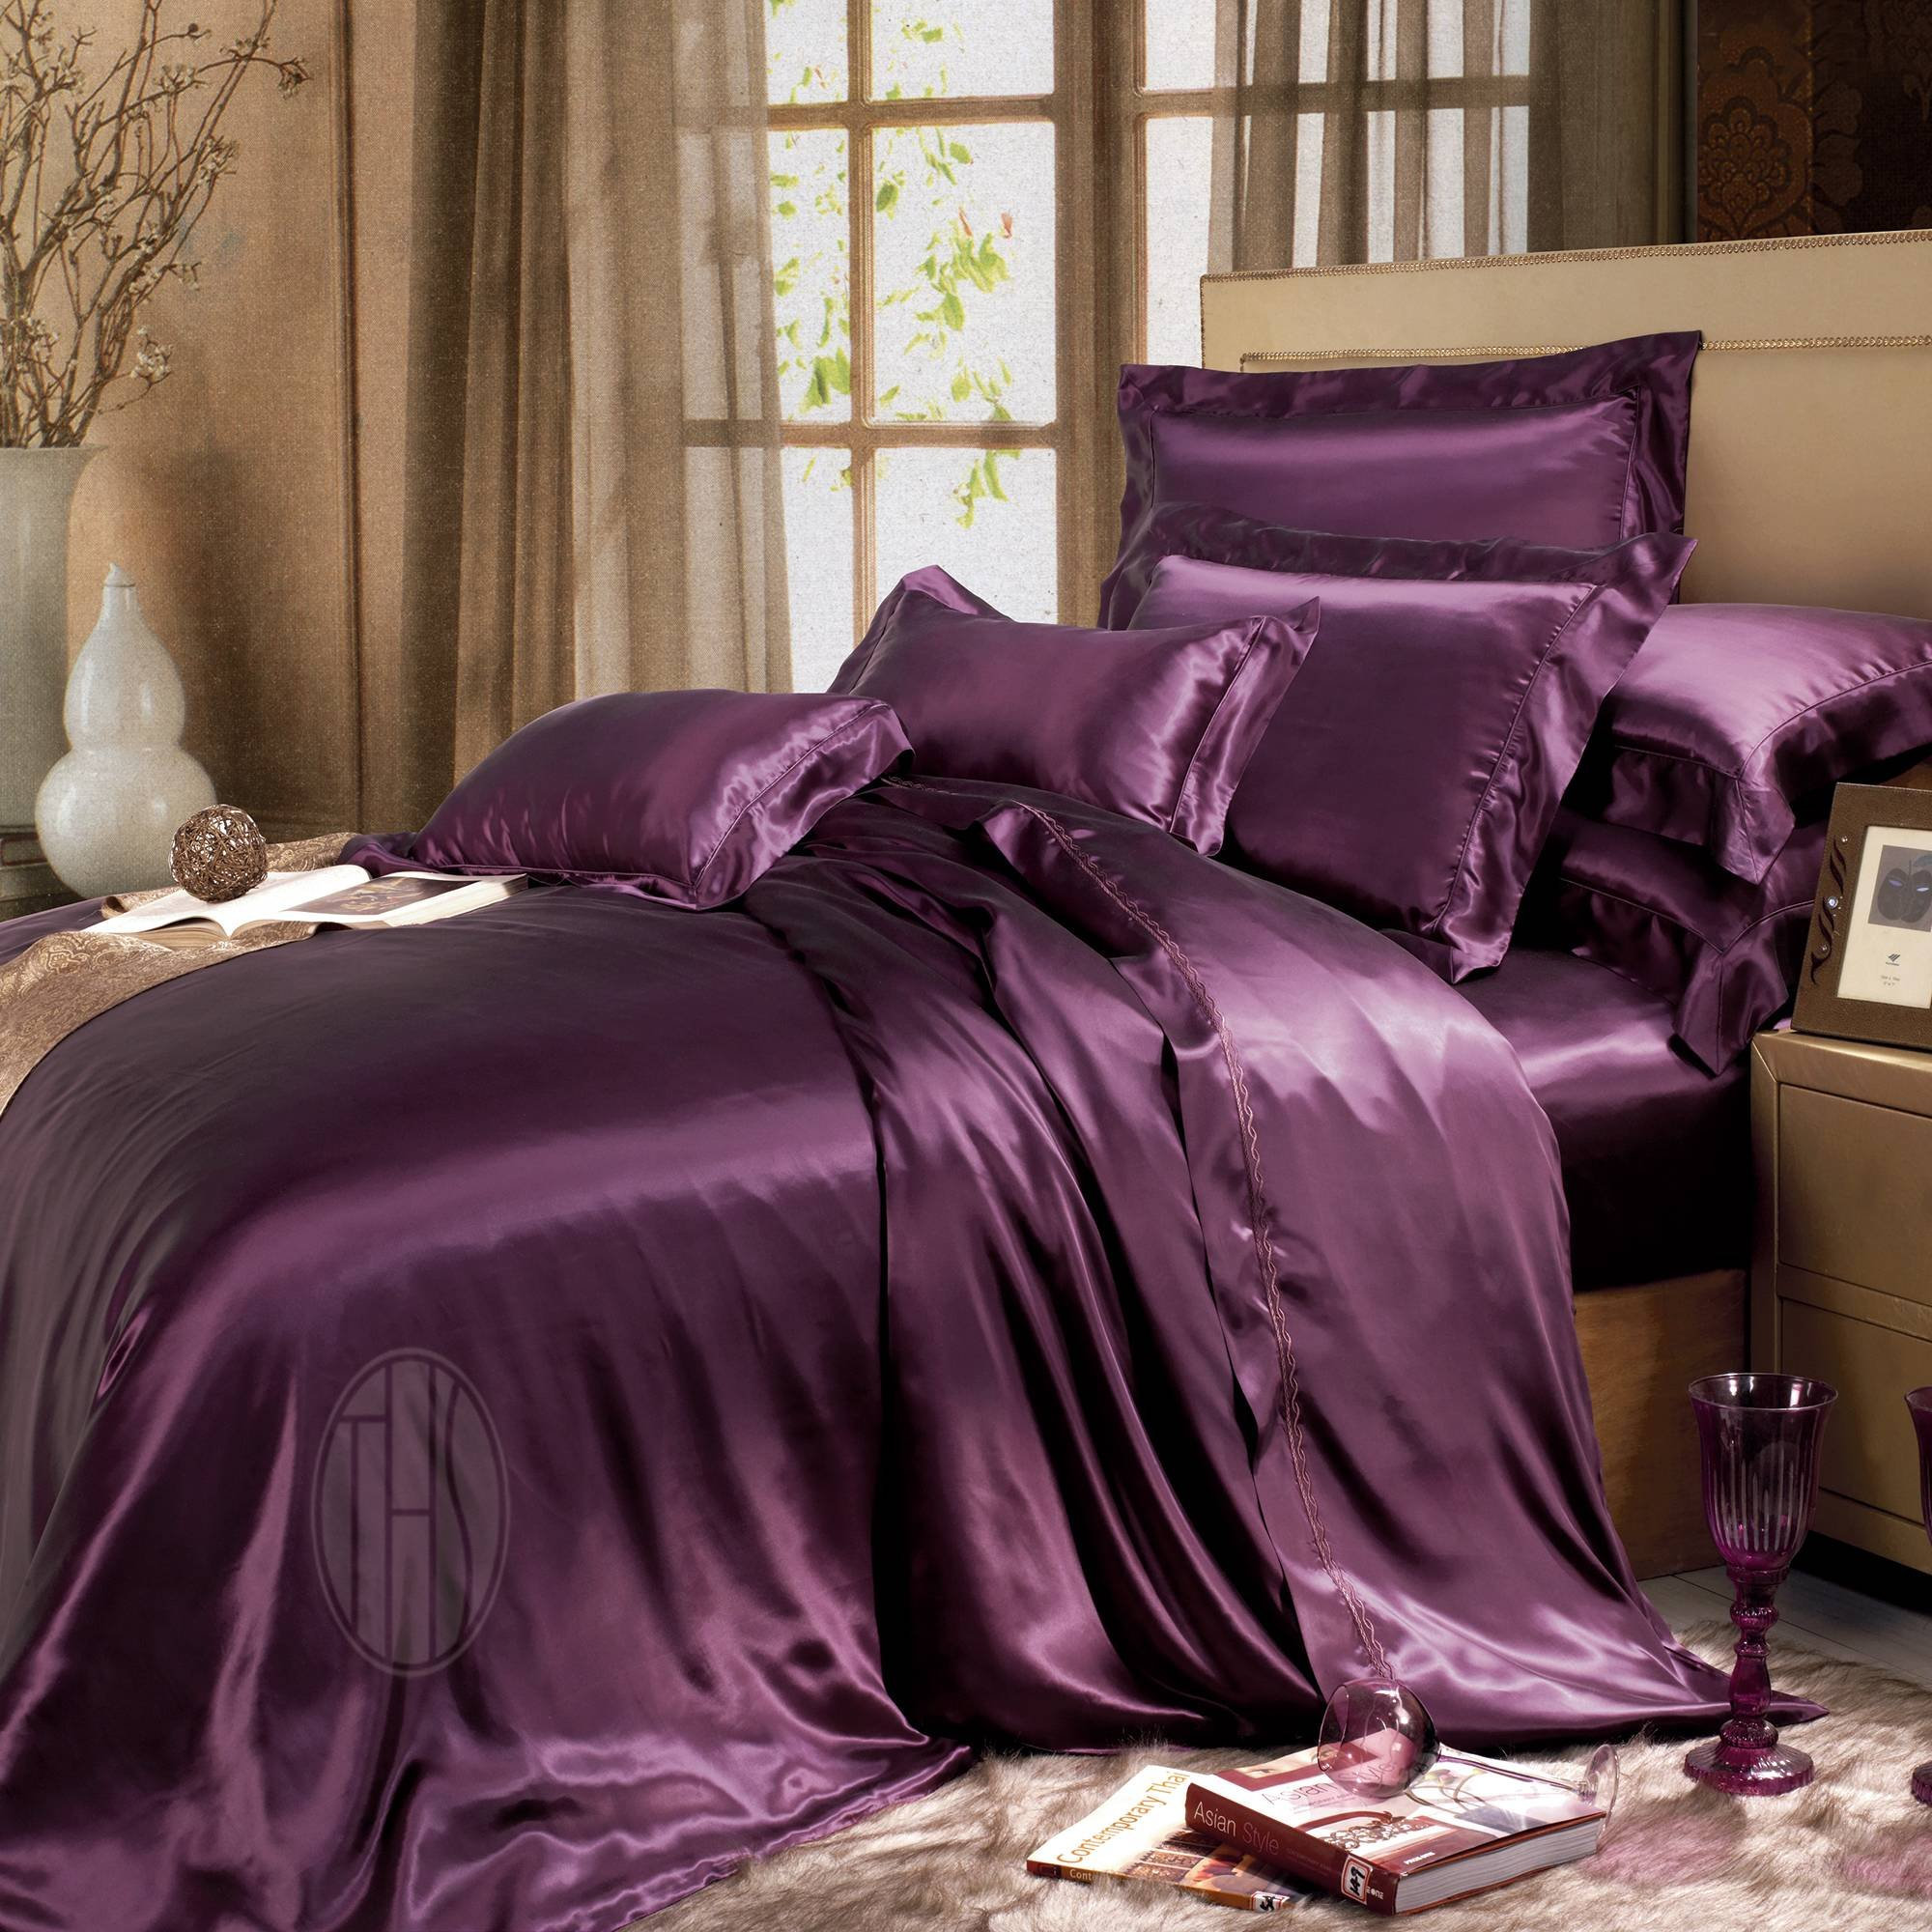 THXSILK Silk Duvet Cover, Silk Comforter Covers, Luxury Bedding - Ultra Soft, Machine Washable, hypoallergenic, Durable -100% Top Grade Mulberry Silk, King Size, Dark Magenta